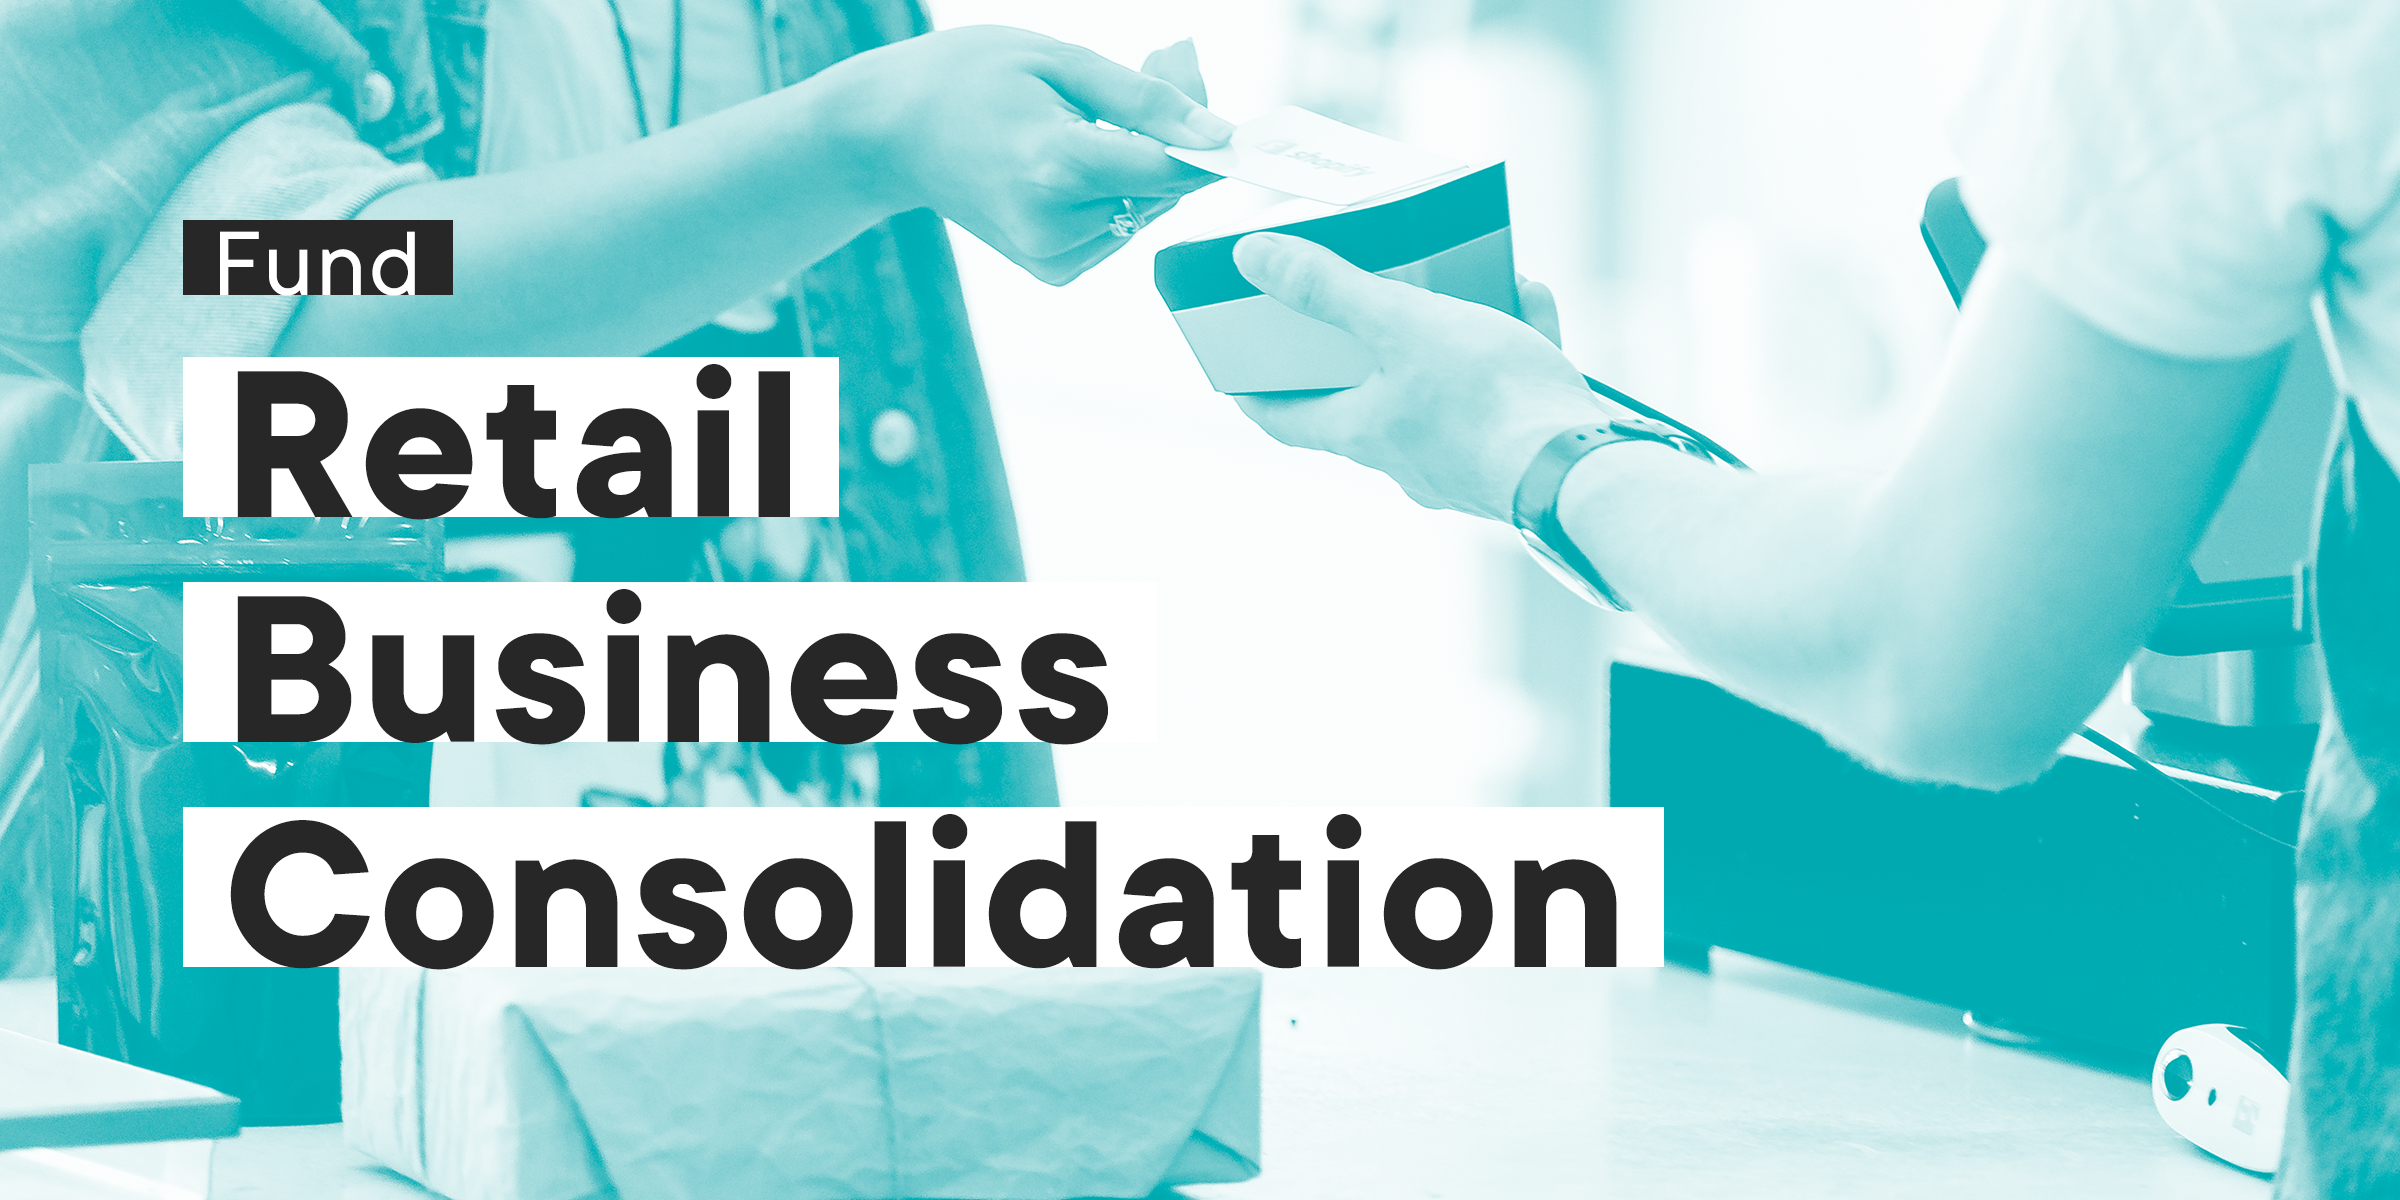 Grant For Retailers : Retail Business Consolidation Fund